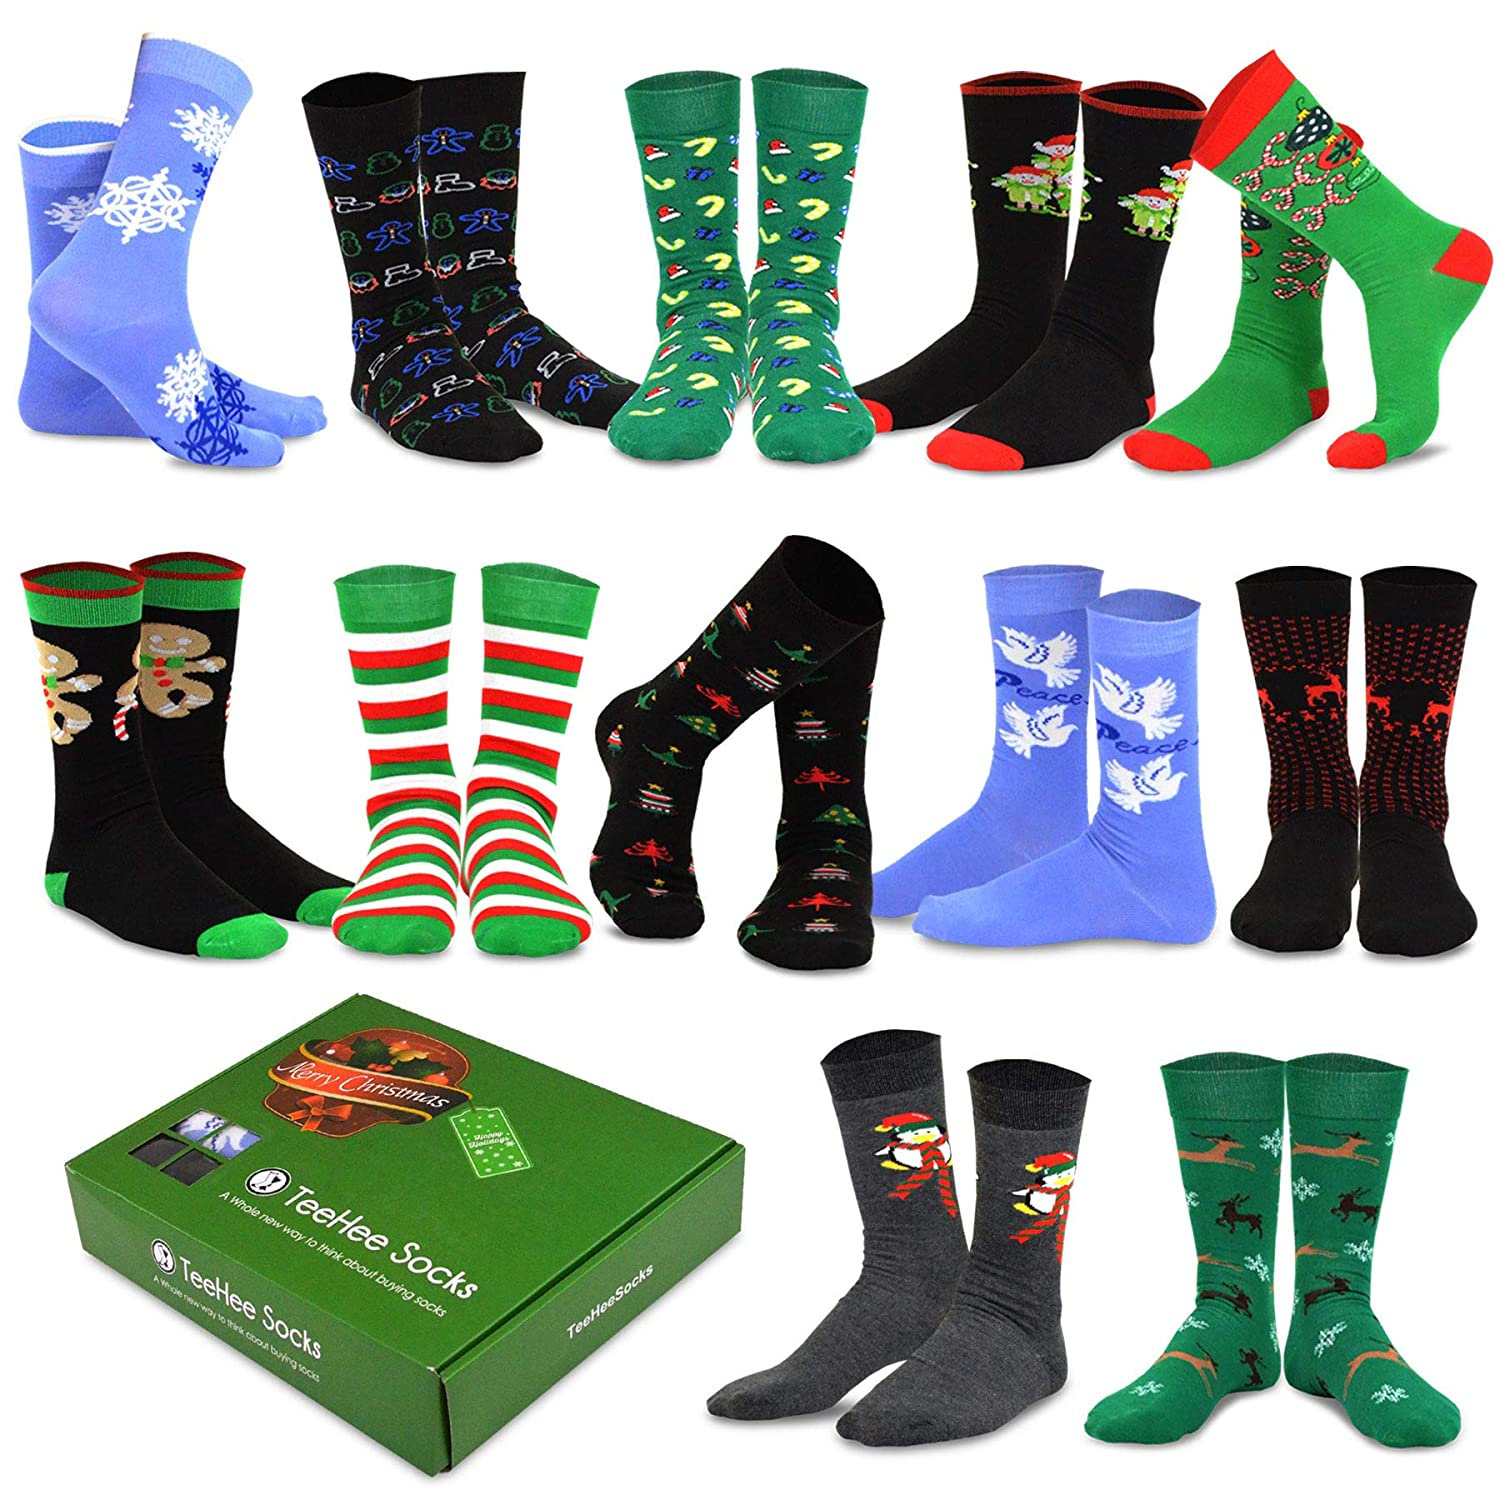 02a20433f92 TeeHee Christmas Holiday 12-Pack Gift Socks for Men with Gift Box (Holiday-A)  at Amazon Men s Clothing store